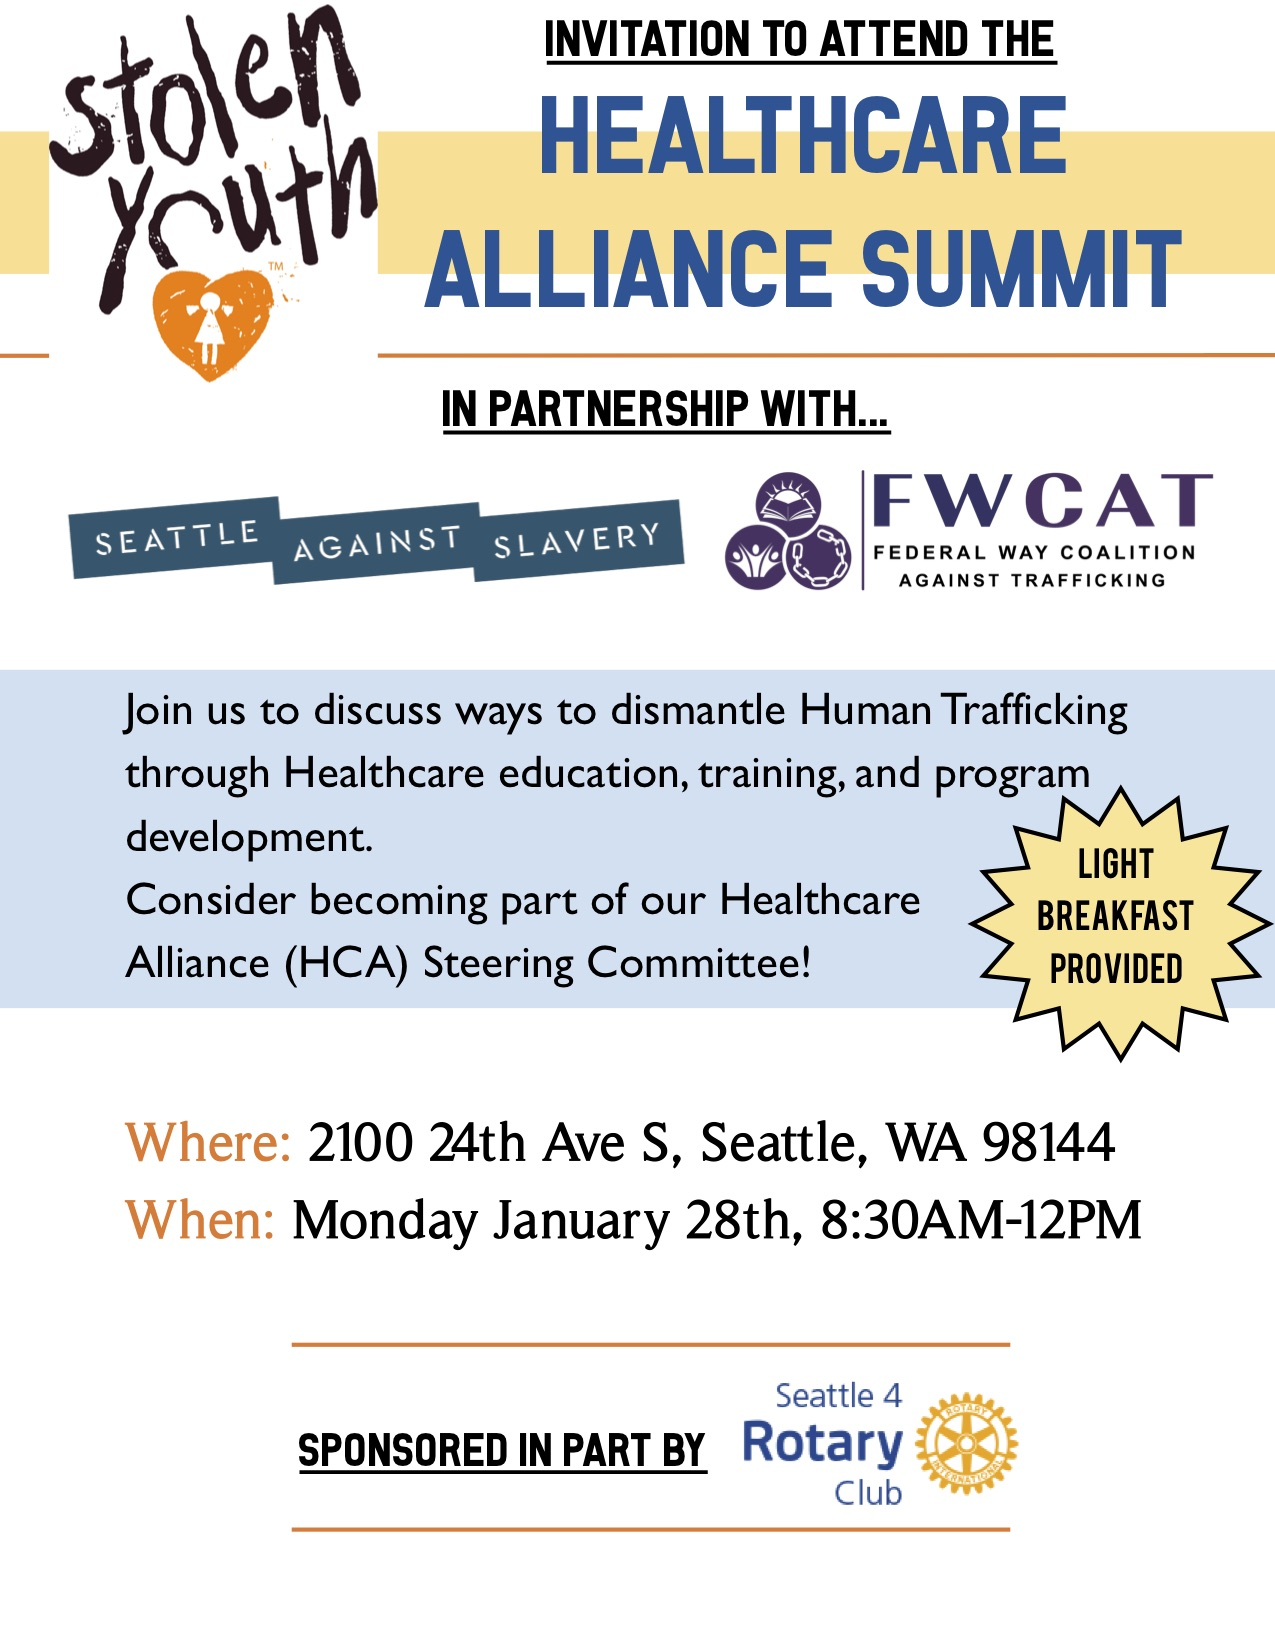 Join us to discuss ways to dismantle Human Trafficking through healthcare education, training, and program development. Become part of our Healthcare Alliance Advisory Steering Committee. Light breakfast provided.